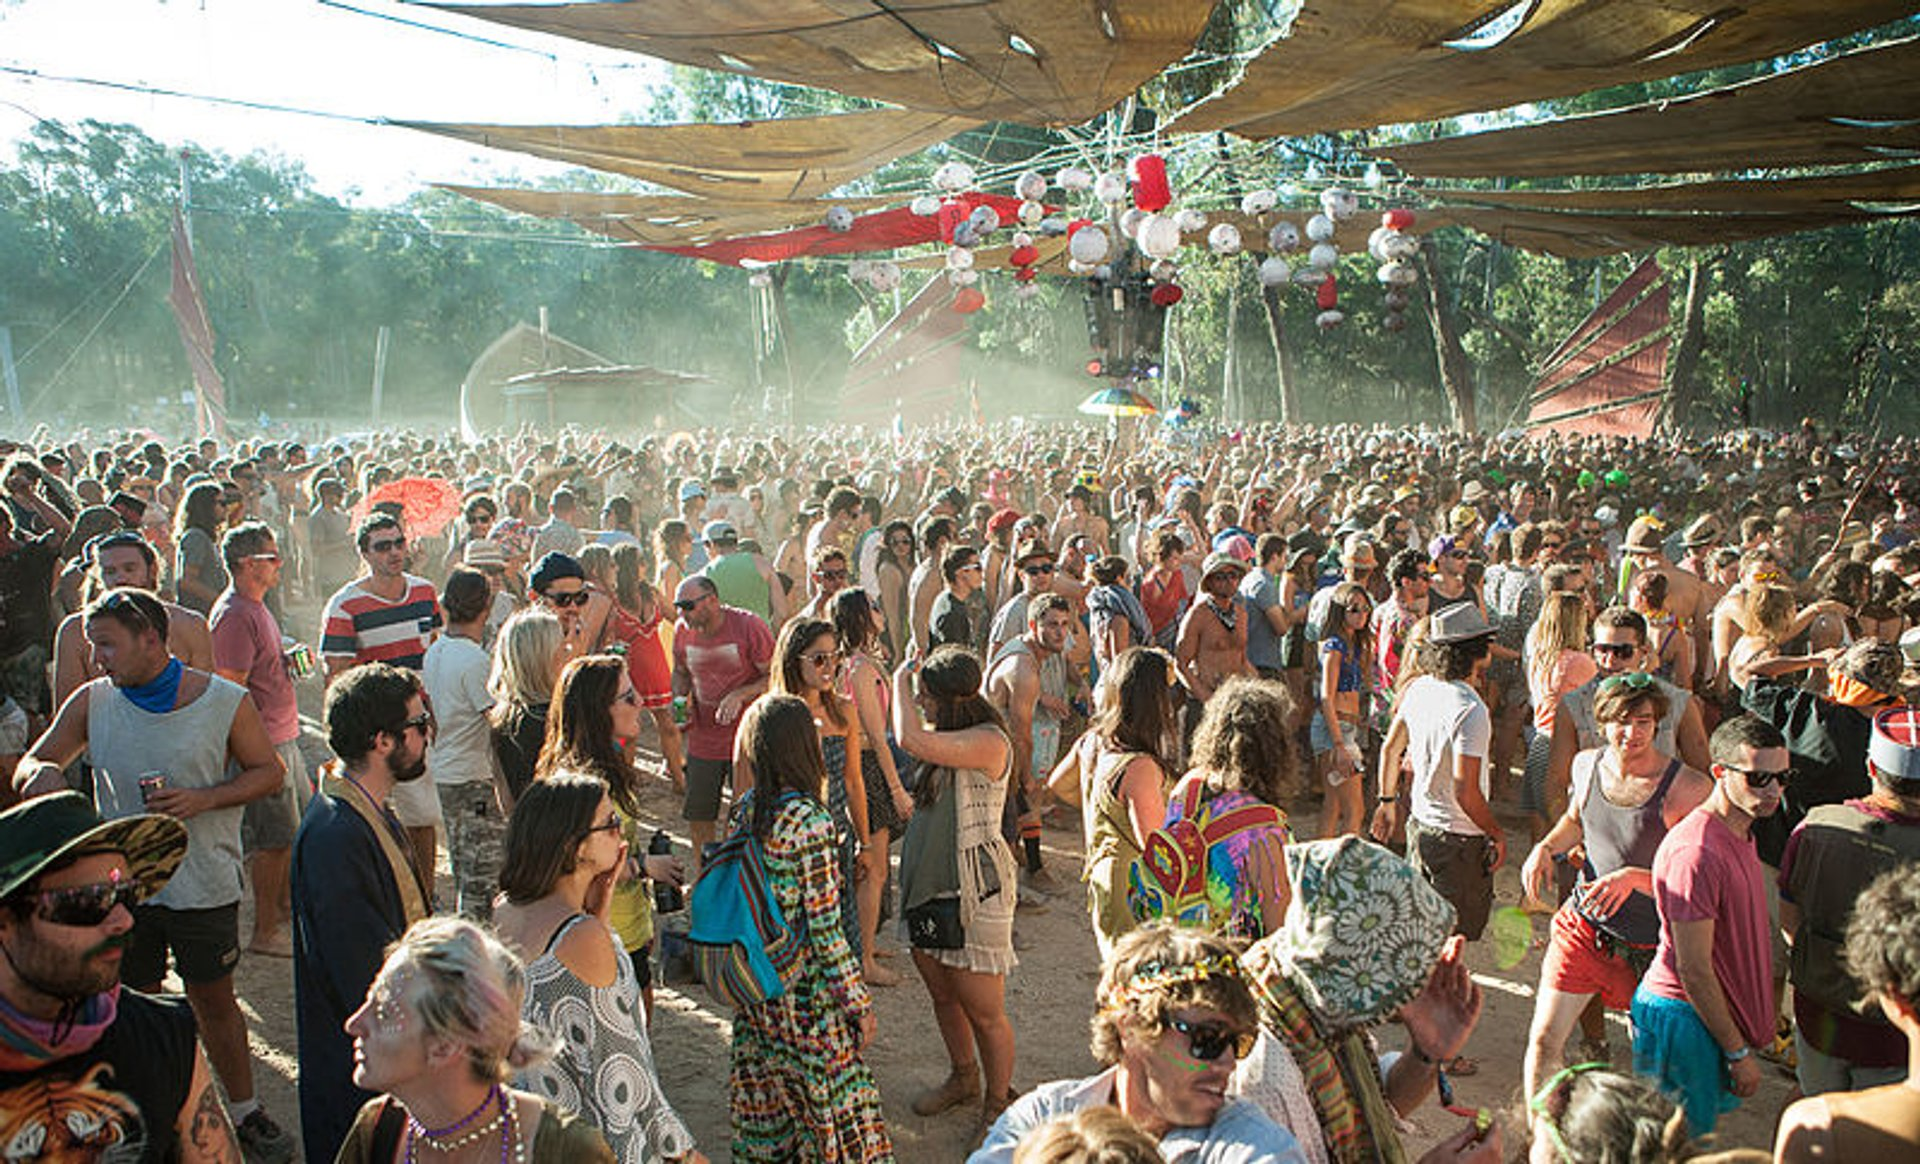 Rainbow Serpent Festival in Victoria 2020 - Best Time